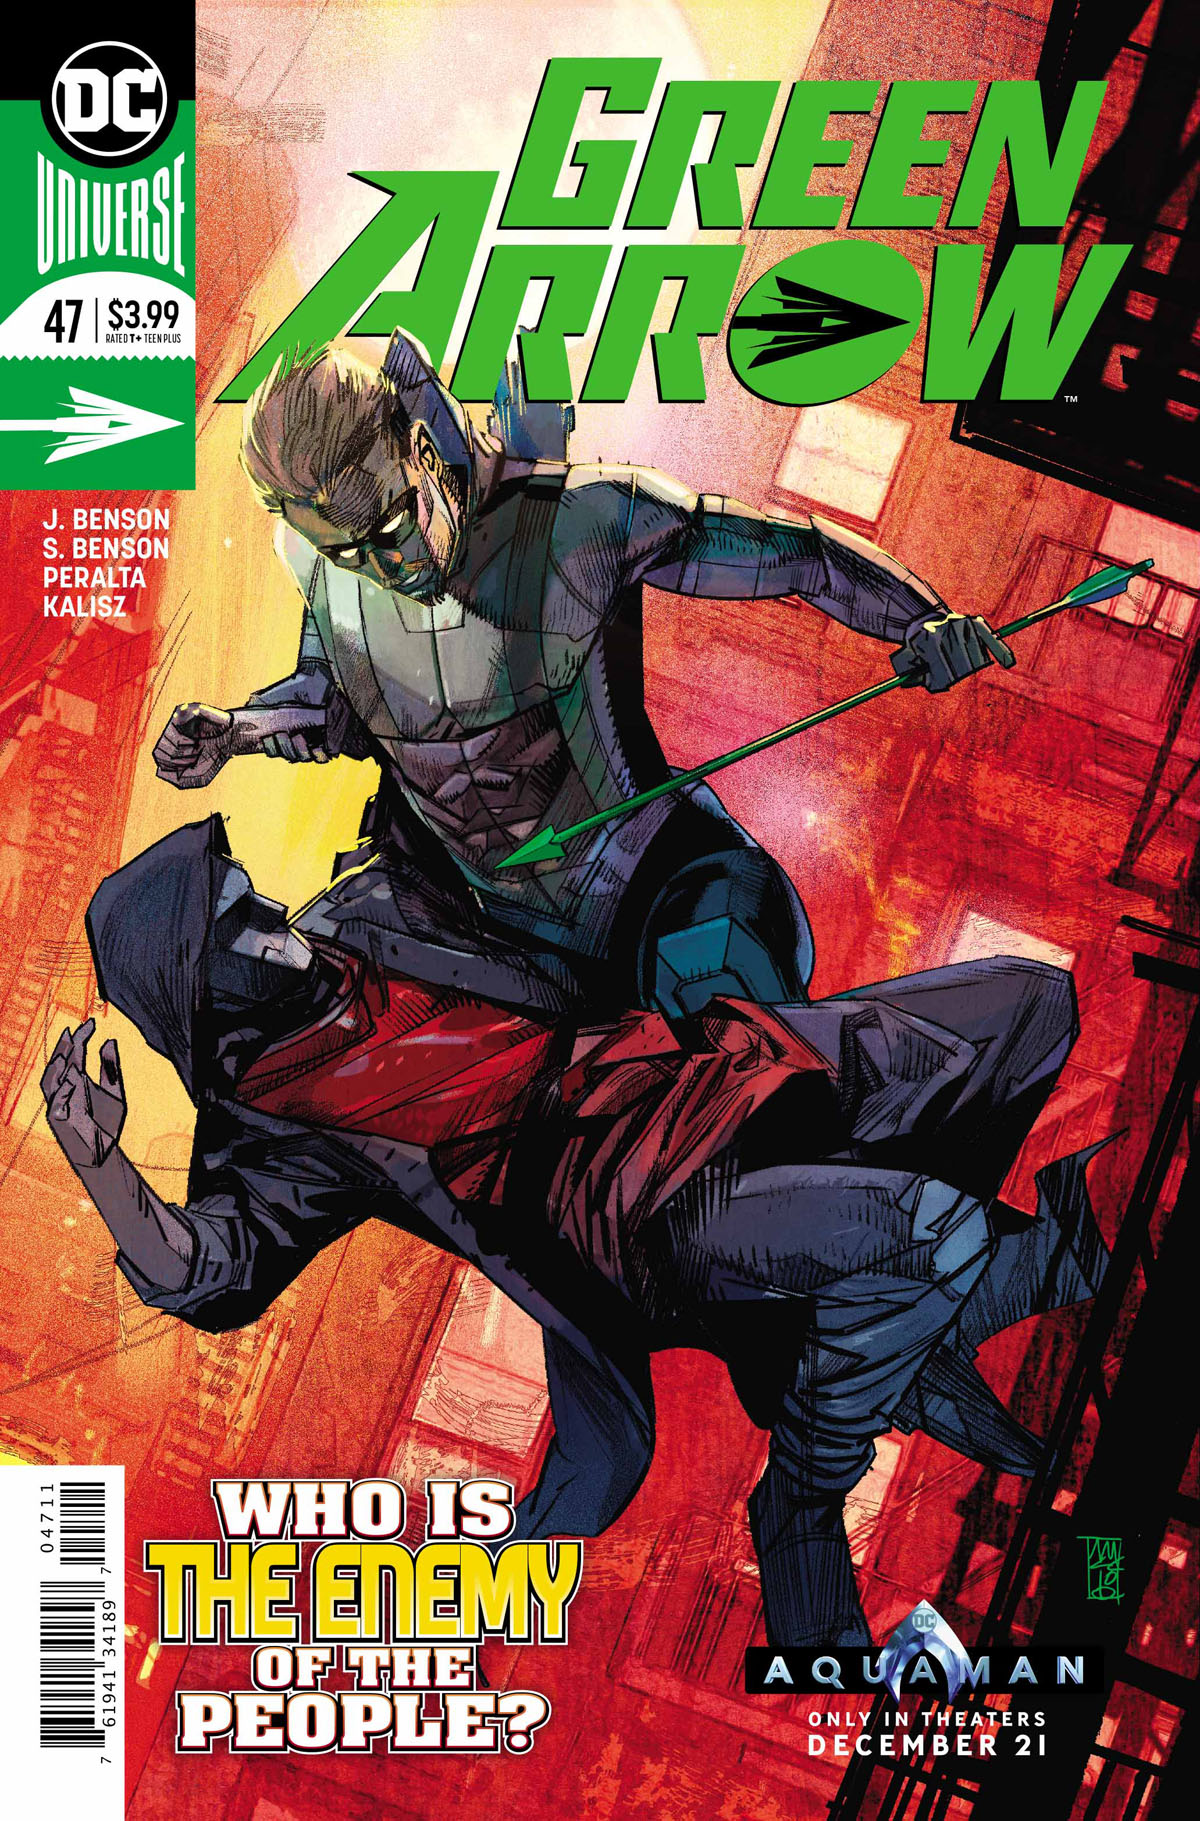 Green Arrow #47 cover